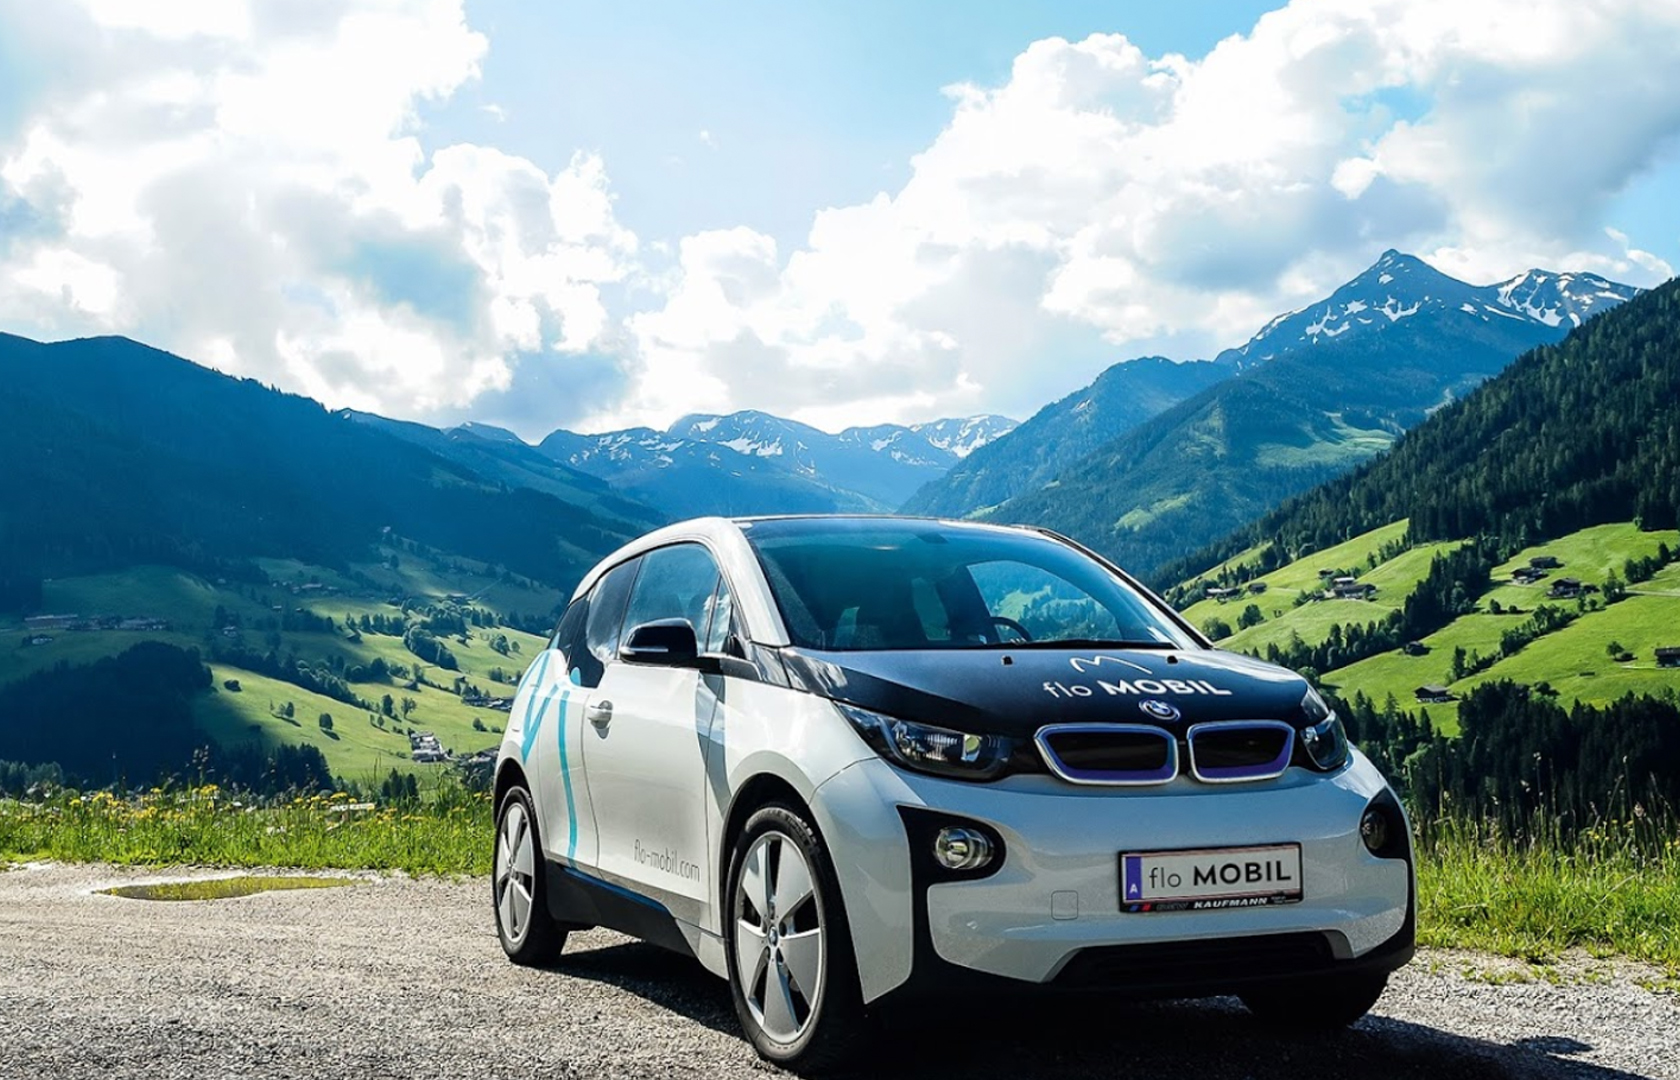 Smartes eCarsharing aus Tirol in neuem Look & Feel